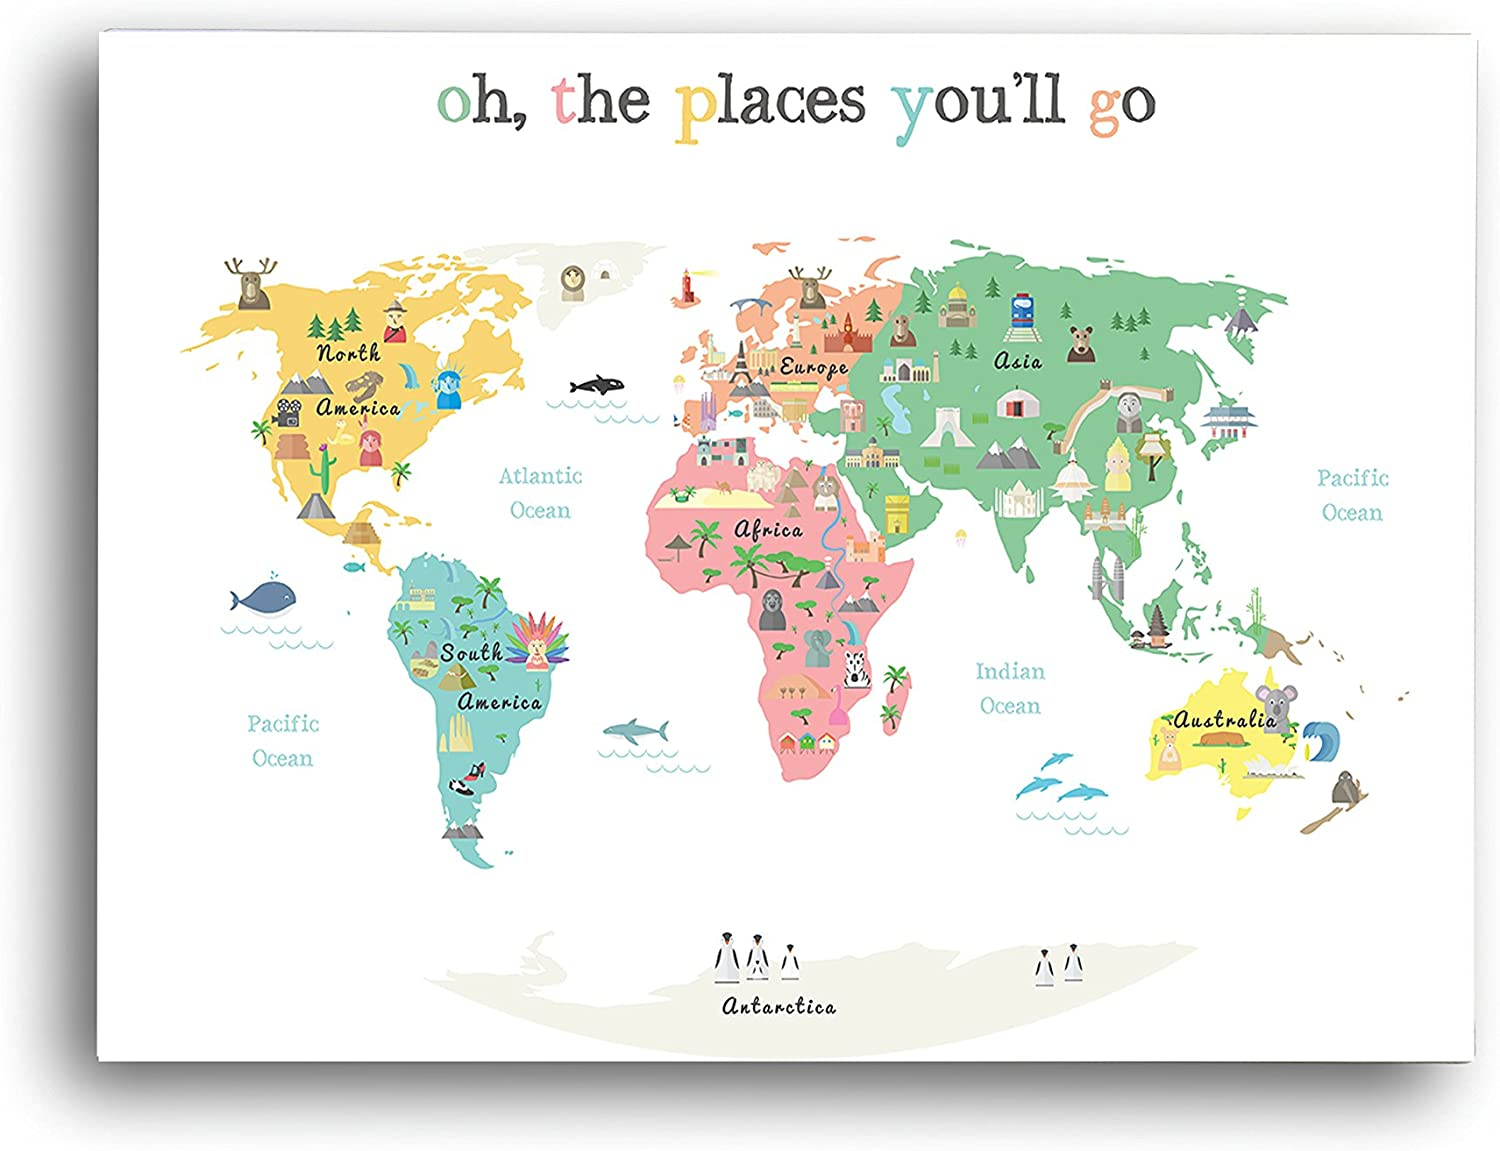 """""""Oh The Places You'll Go"""" Children's Illustrated World Map Poster (14x11"""") - Global Nursery Art - Perfect for Nursery Decor, Bedroom Decor, Playroom Map, and Classroom Map- Educational Kid's Room Map"""